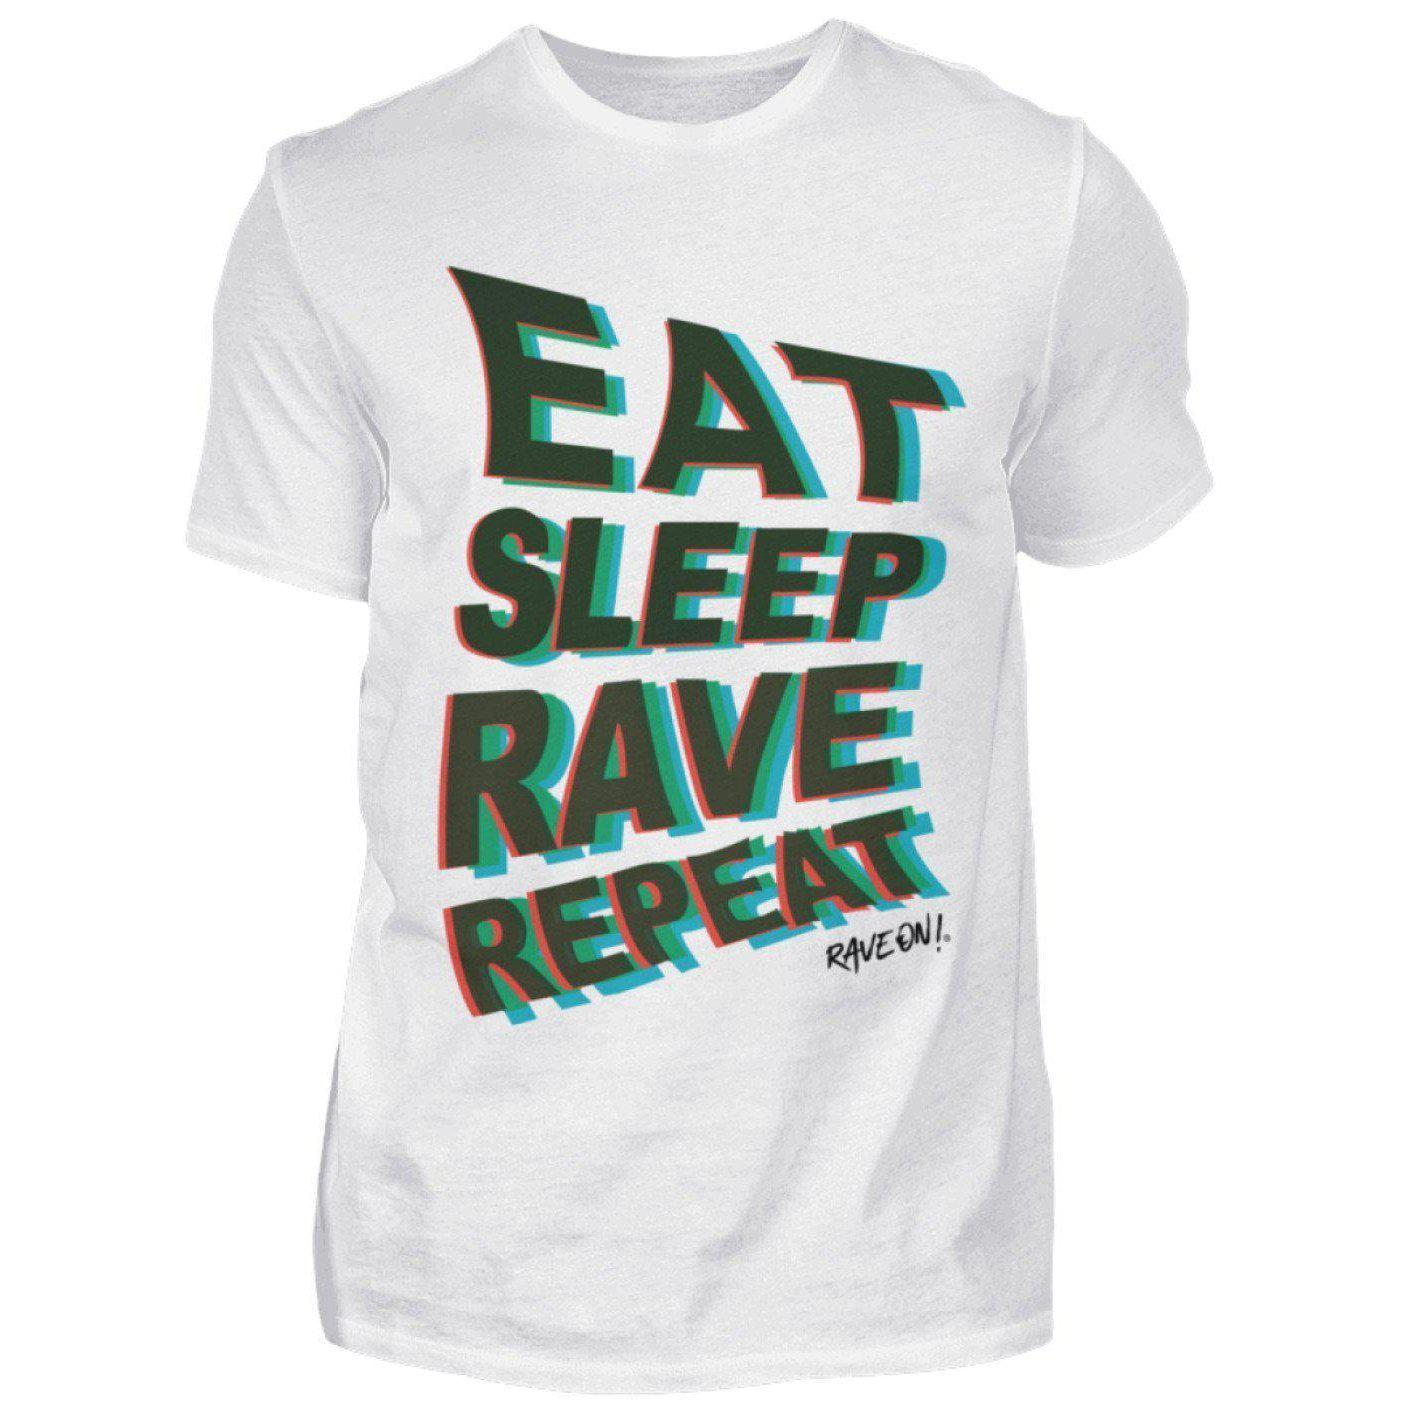 Eat Sleep Rave Repeat Rave On!® T-Shirt - Herren Shirt-Herren Basic T-Shirt-Weiß-S-Rave-On! I www.rave-on.shop I Deine Rave & Techno Szene Shop I apparel, best raver shirt, brand, cheap rave clothes, cool repeat shirt, cooles shirt ever, design, Design - Eat Sleep Rave Repeat Rave On!®, Design - Eat Sleep Rave Repeat Rave On!® T-Shirt, eat, eat sleep, eat sleep rave, geschenk, geschenkidee, i heart raves, on, On!®, rave, rave apparel, rave attire, rave brand, rave clothes, rave clothing, rave fa